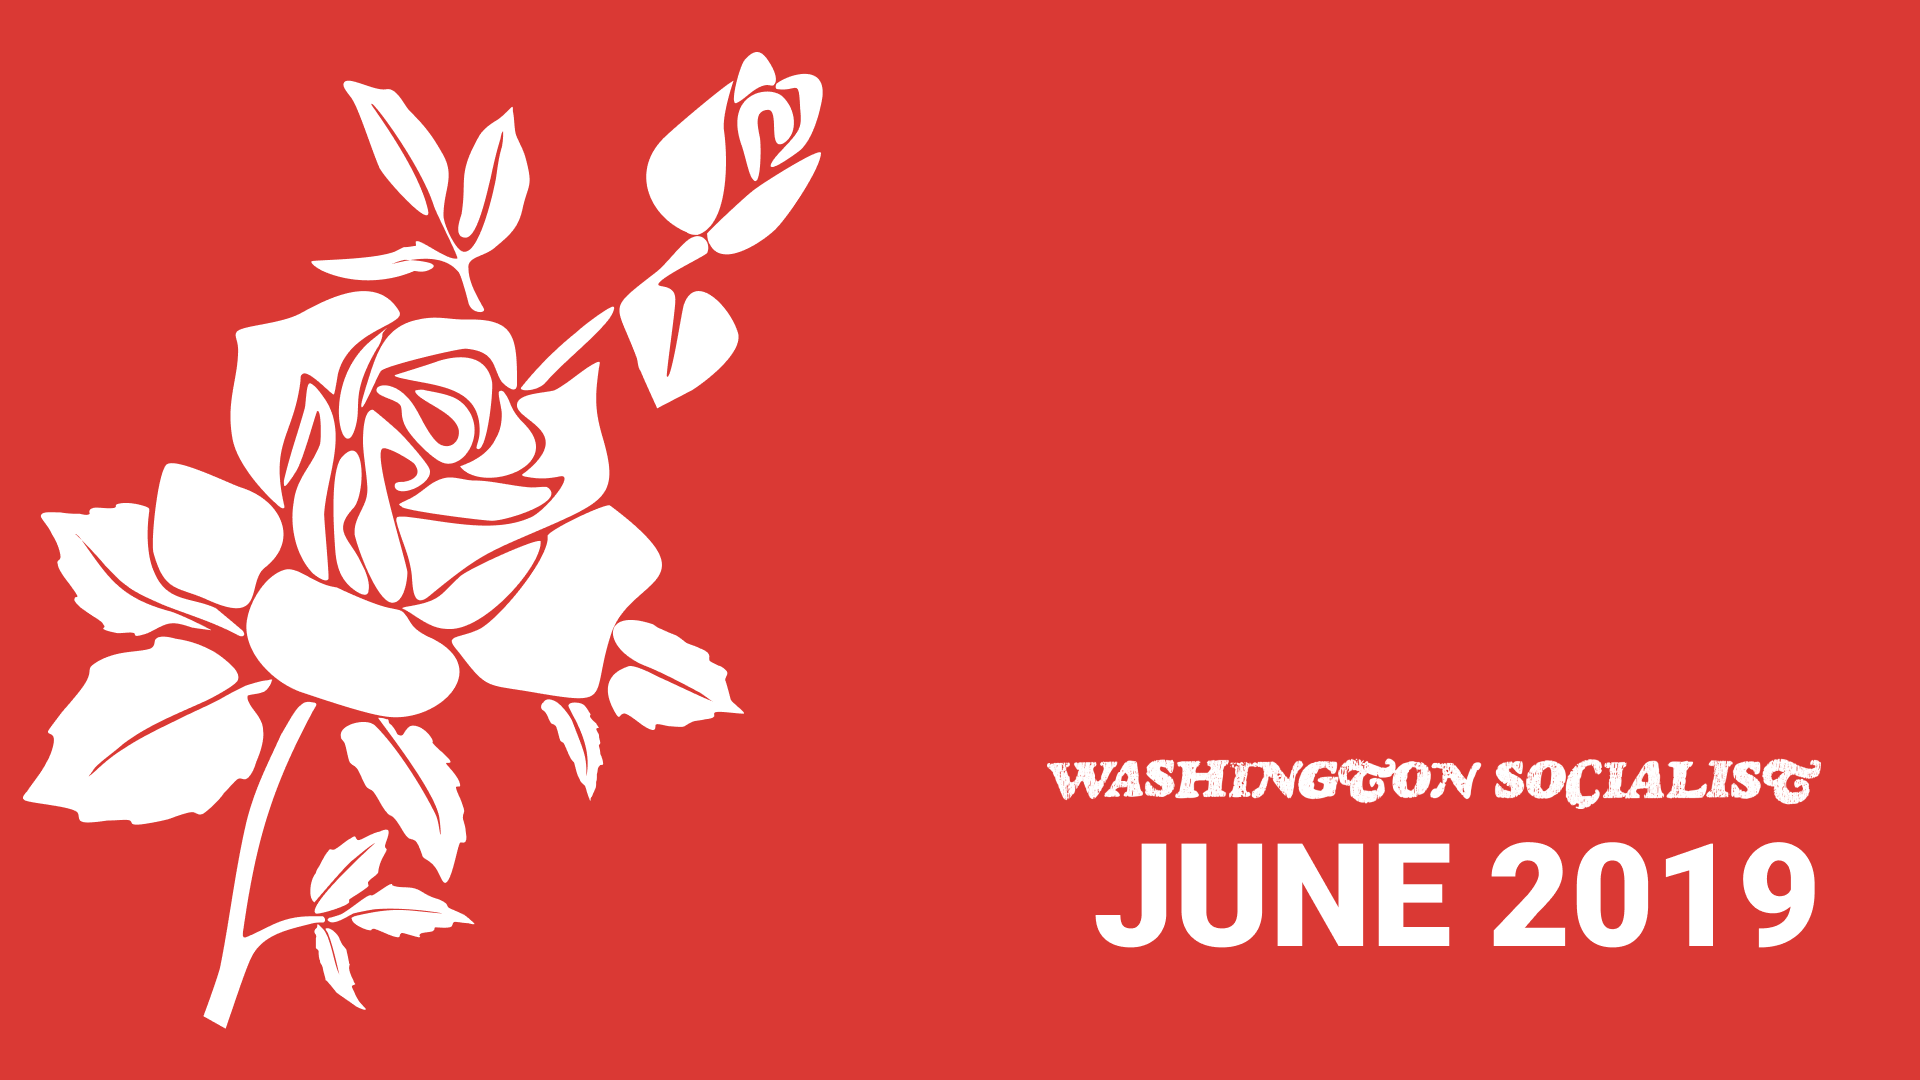 Washington Socialist Cover, June 2019